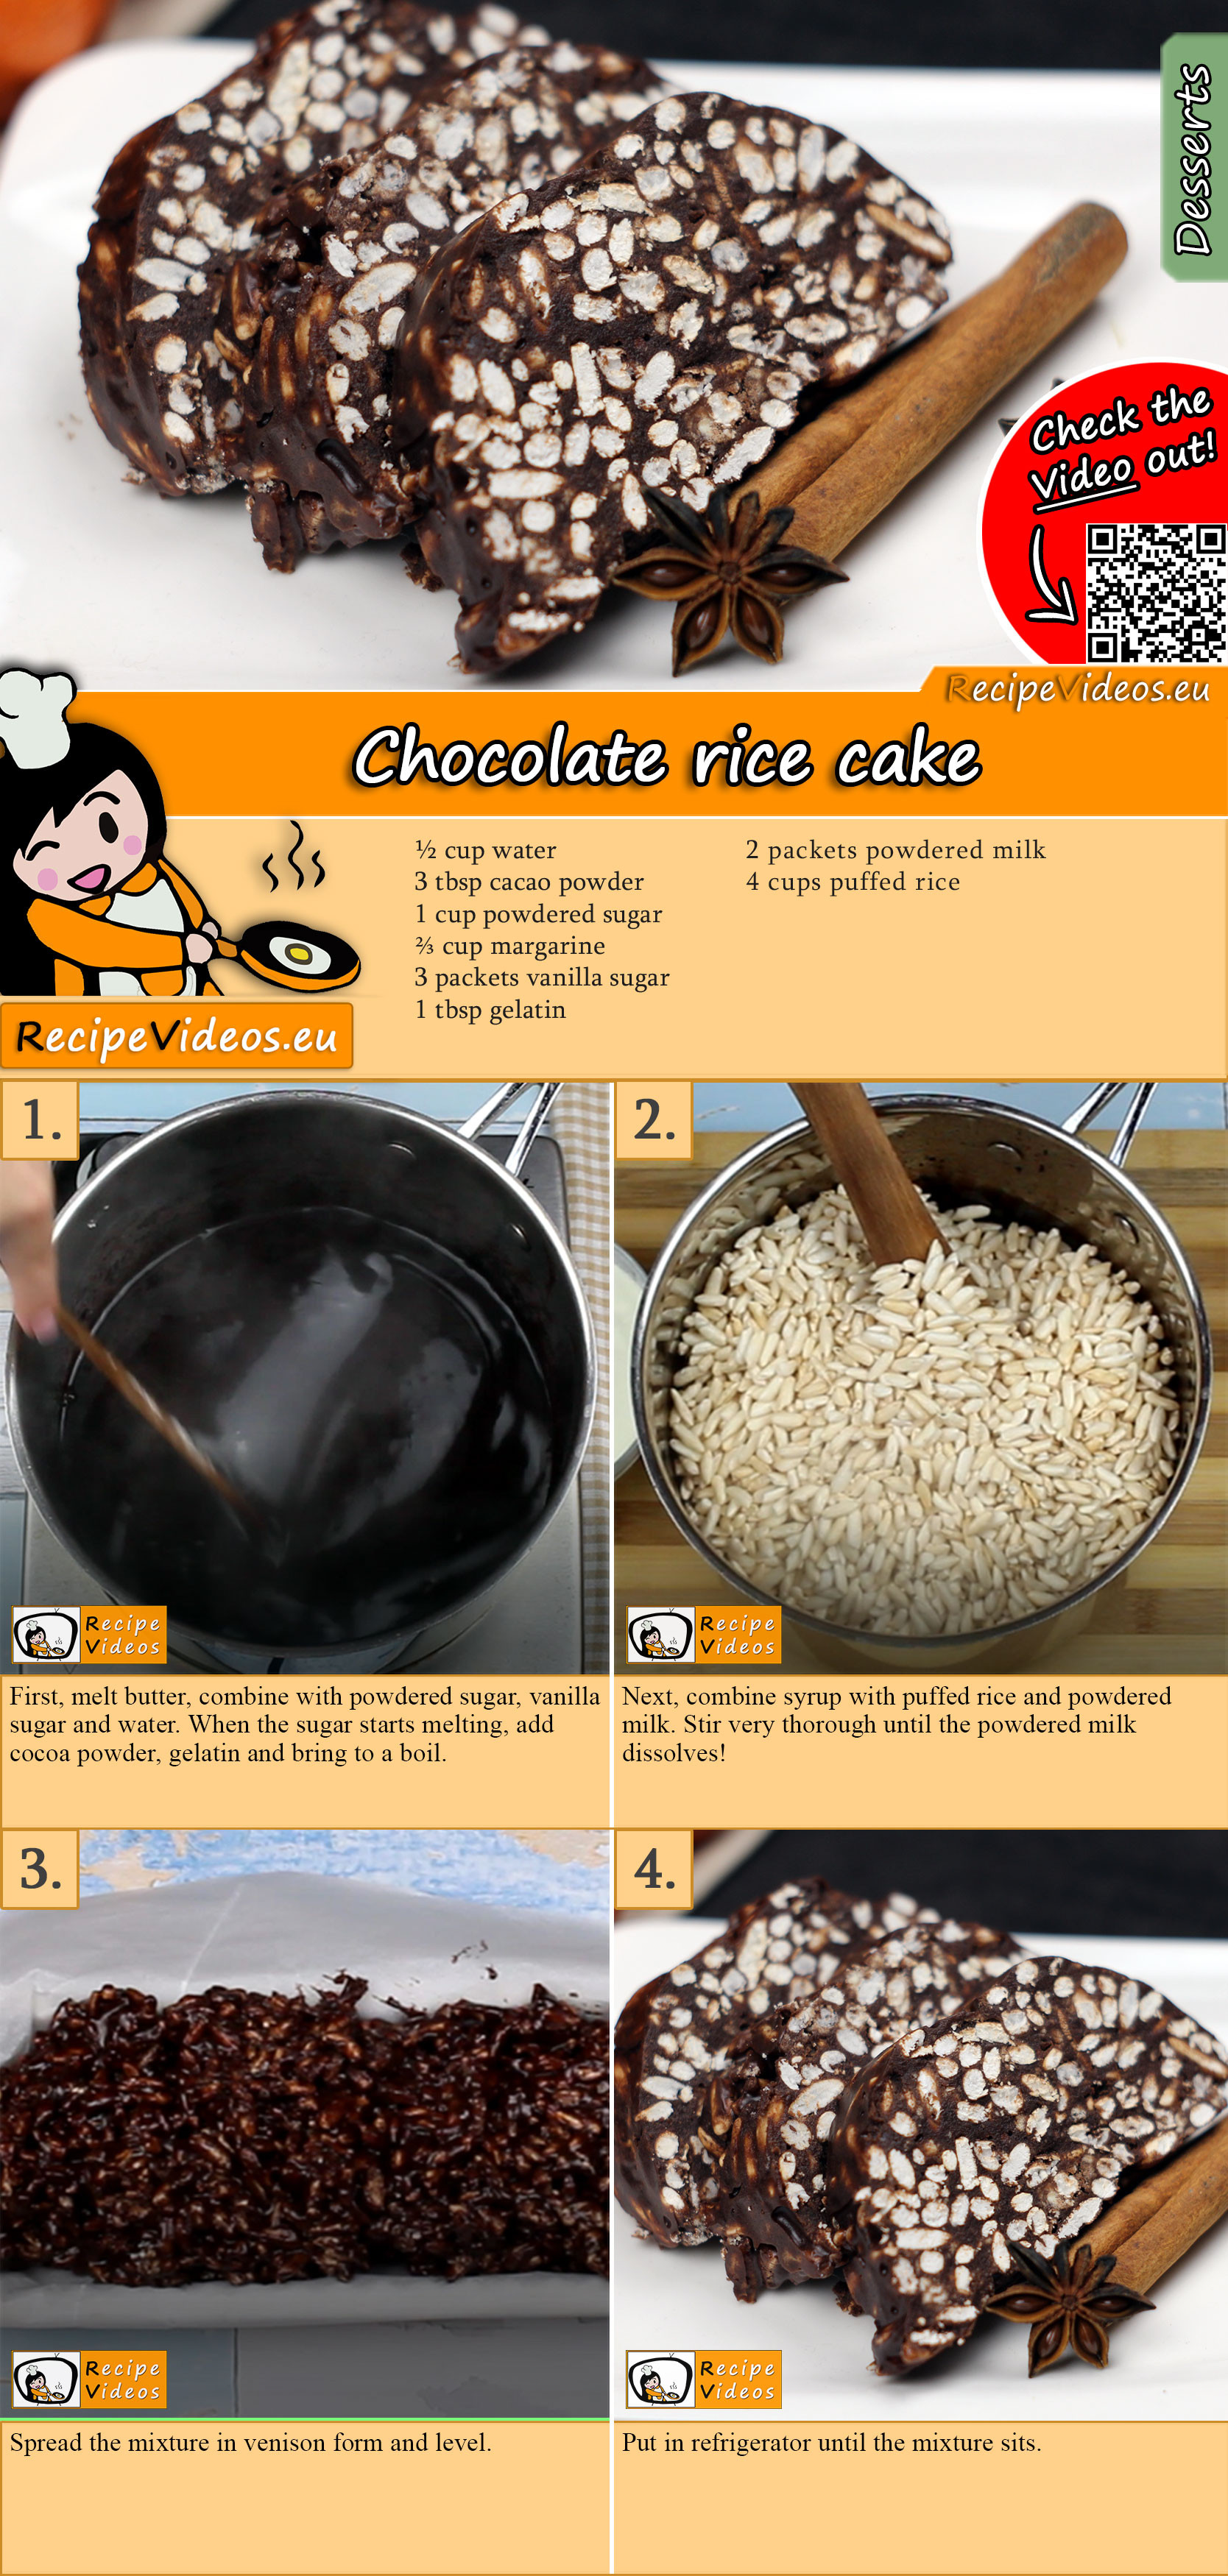 Chocolate rice cake recipe with video